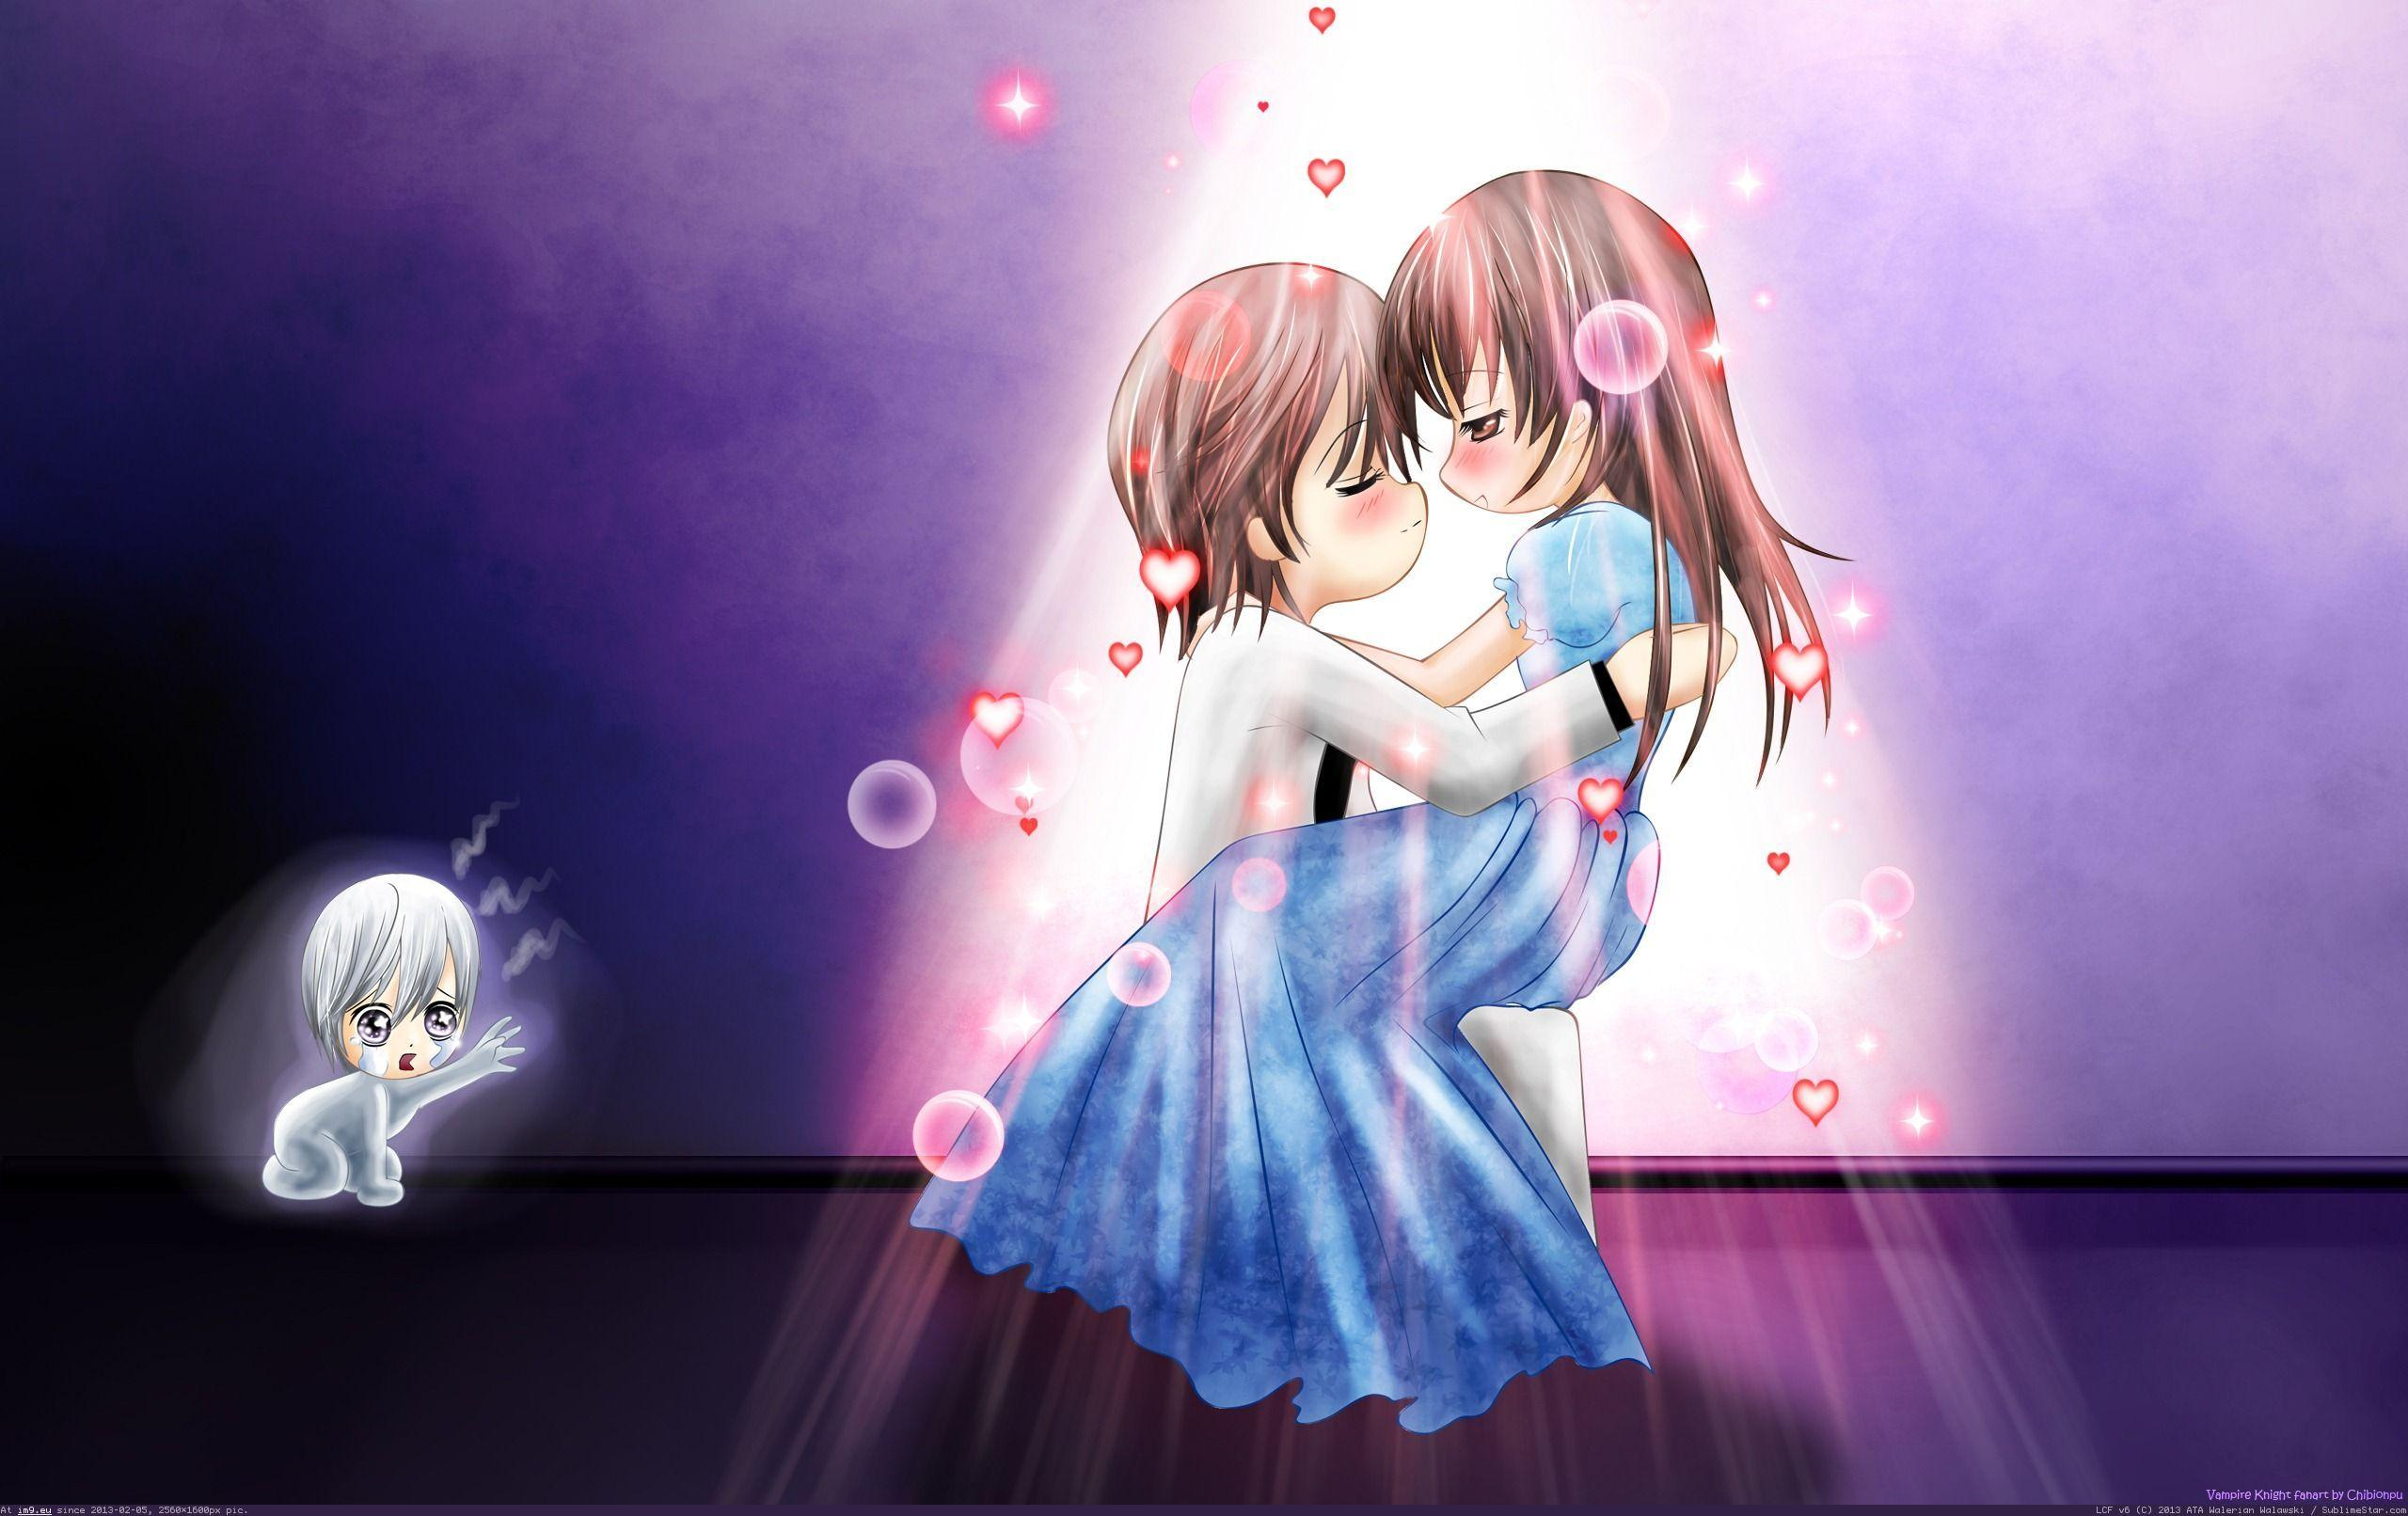 Anime Couple Wallpaper Hd Full Animated Cartoon Desktop High Quality